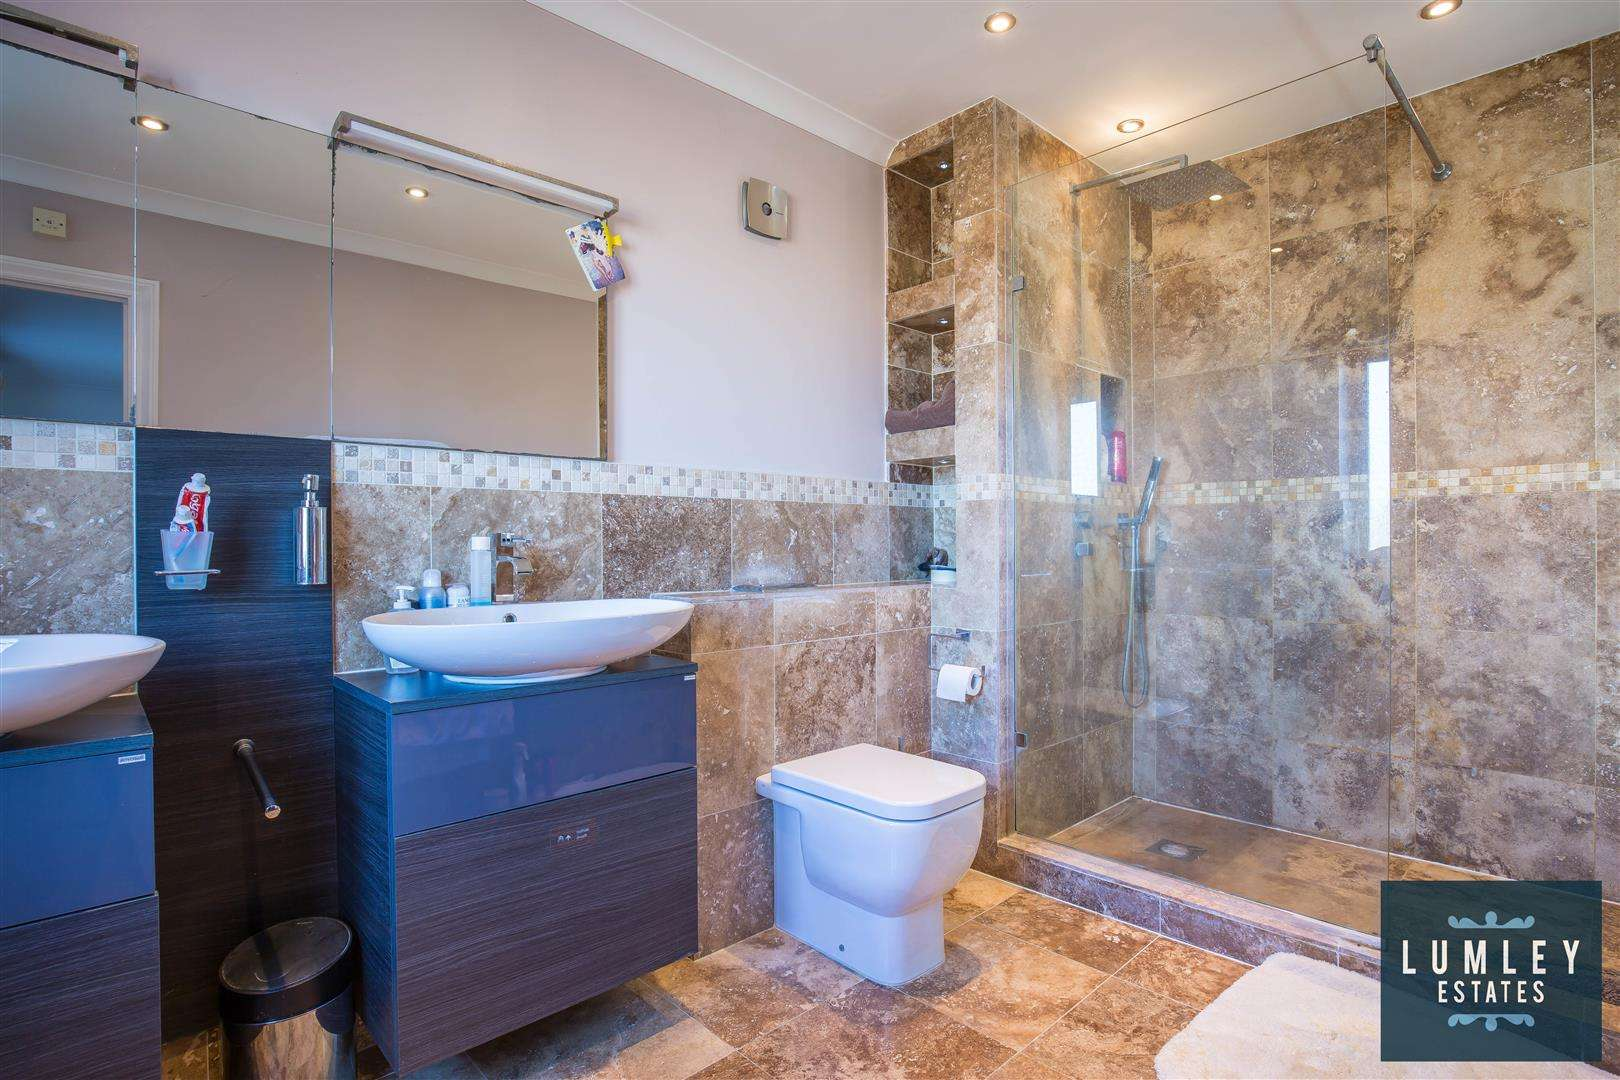 6 bed to rent - (Property Image 8)